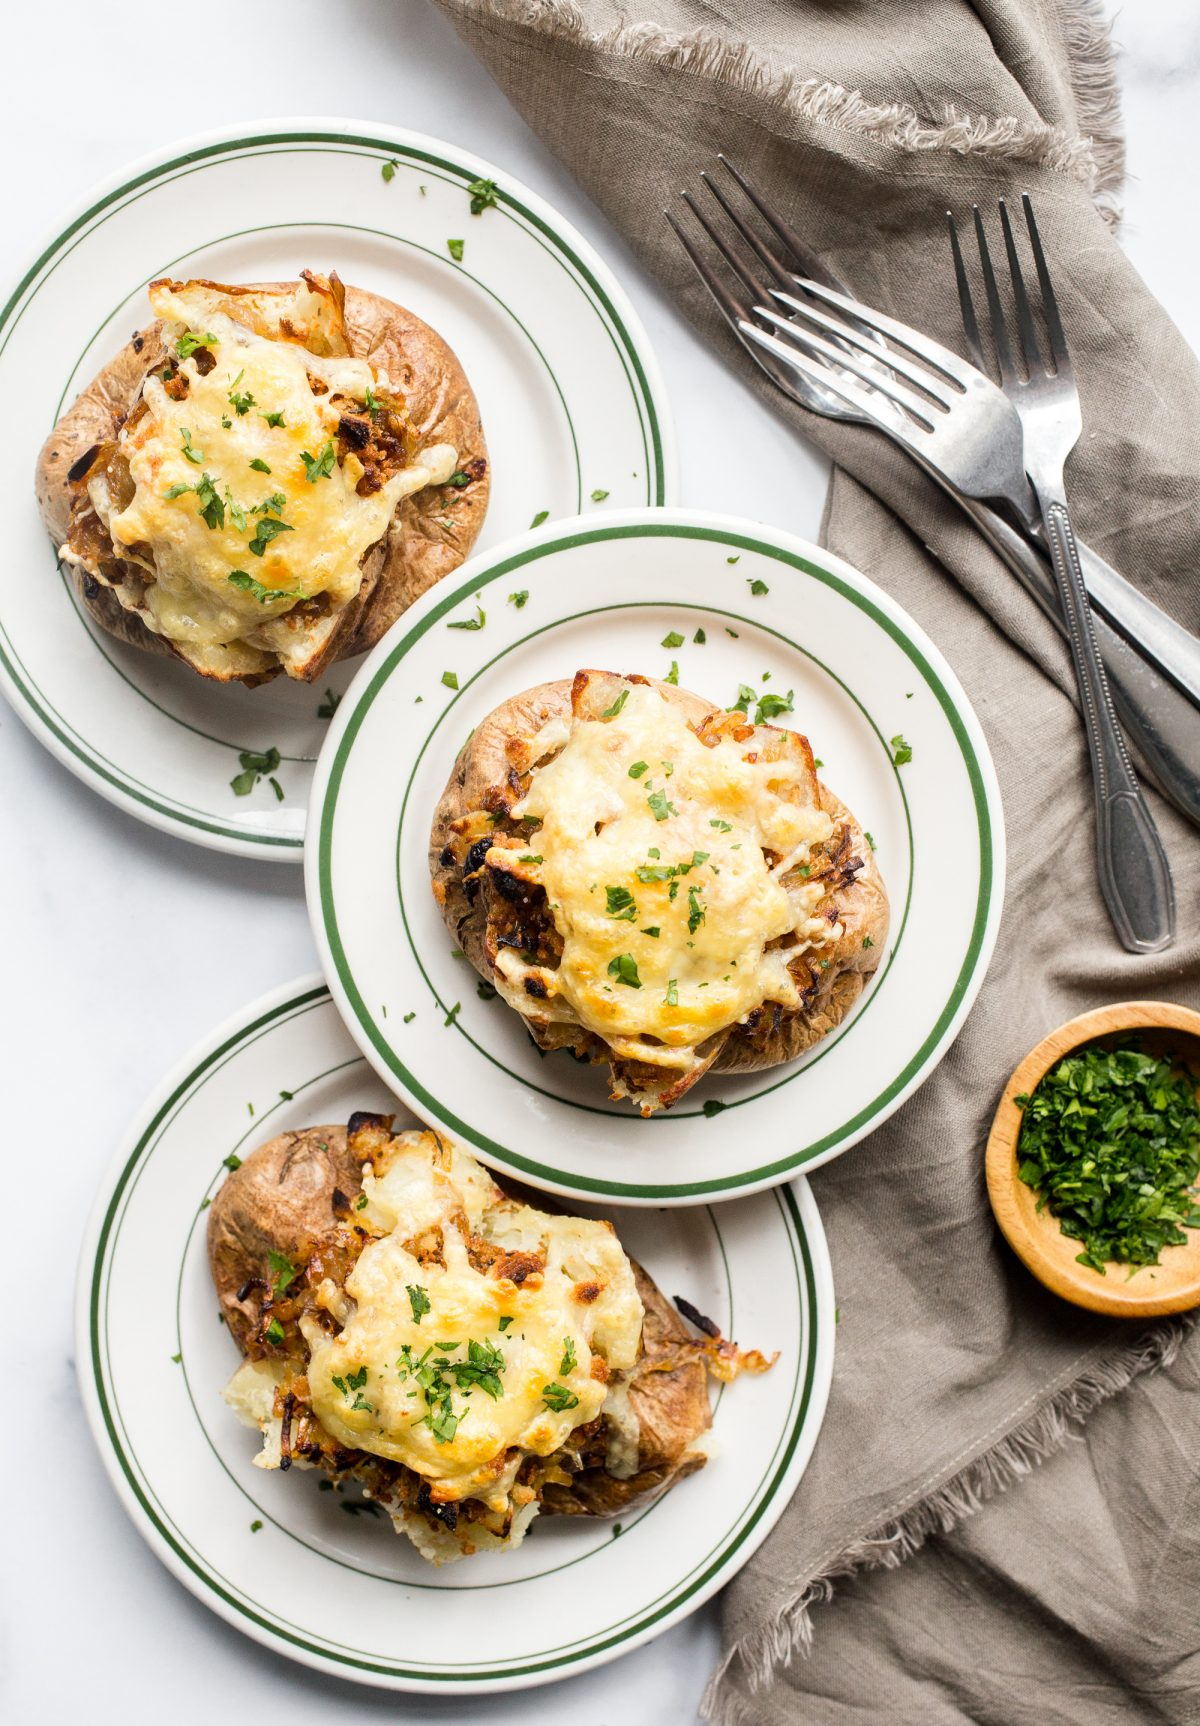 3 loaded French onion soup baked potatoes on small plates with forks and a bowl of parsley